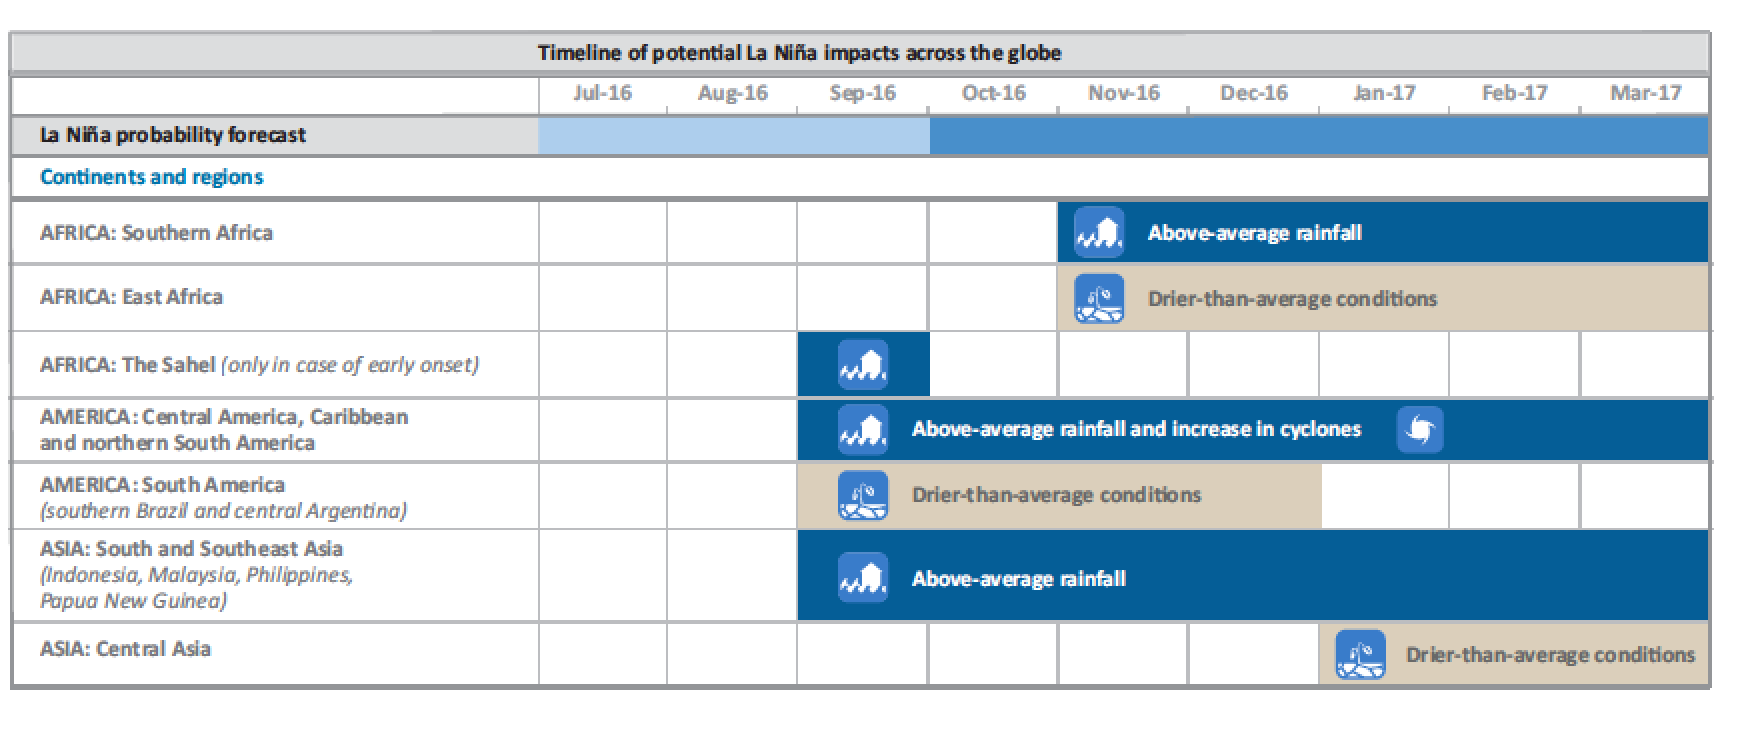 The diagram illustrates a potential timeline of La Niña-induced impacts across different regions based on the usual pattern observed during La Niña years.